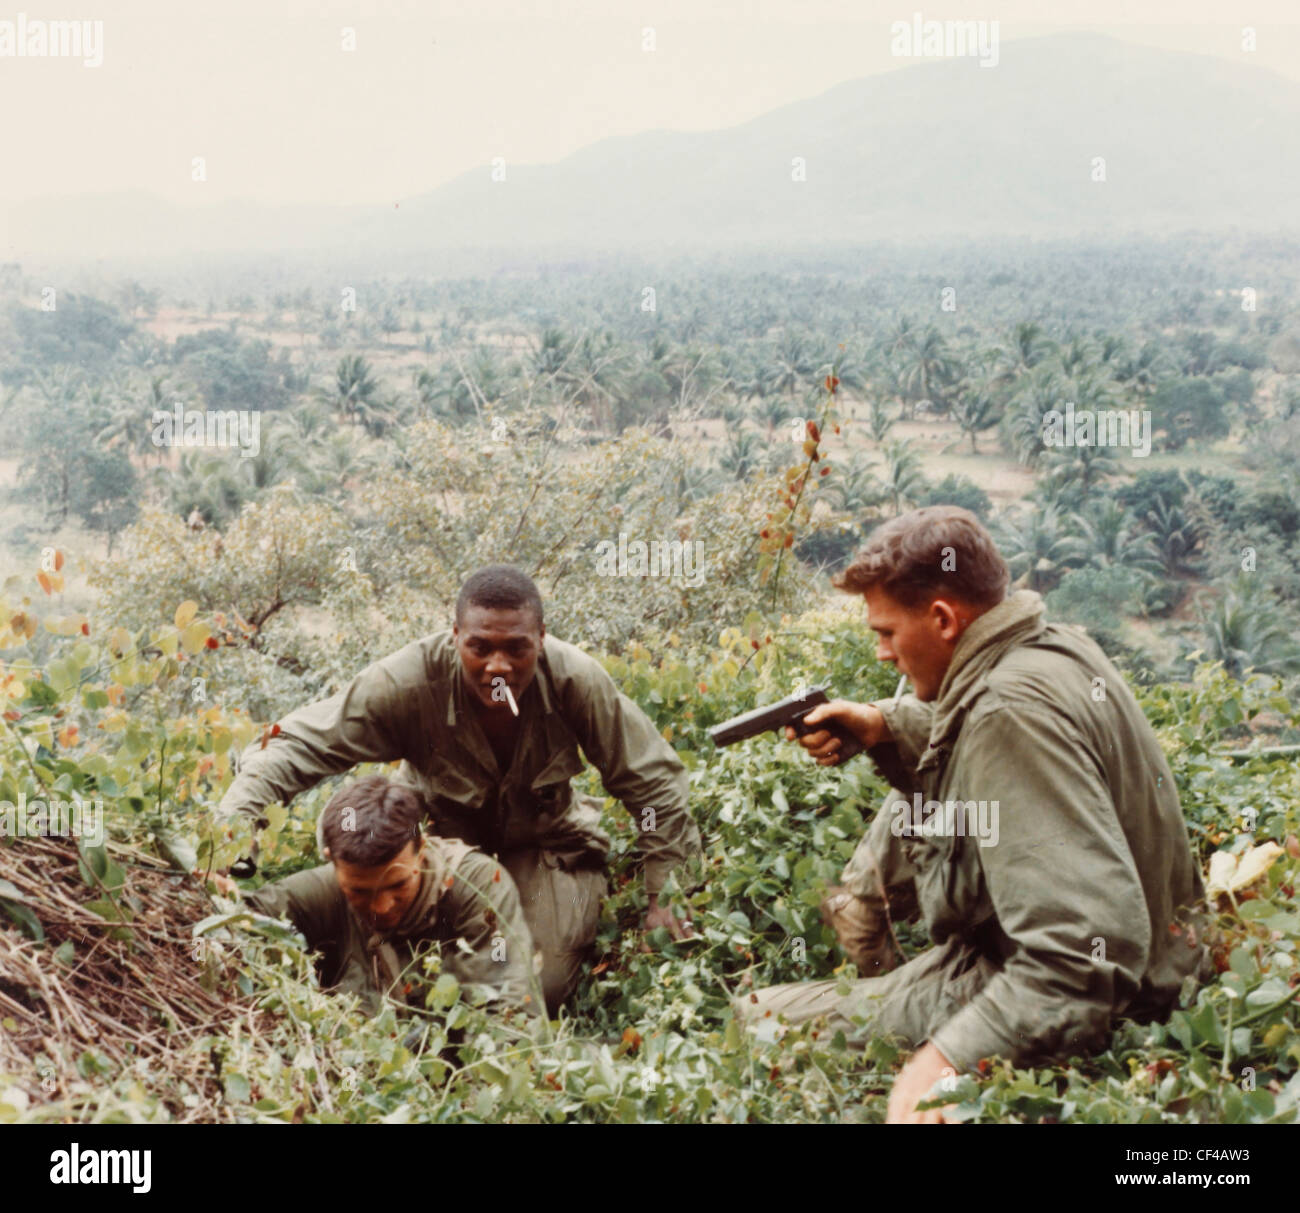 riflemen of 8th Cavalry, 1st Cavalry Division enter a cave on mount in search for Viet Cong and contraband during - Stock Image